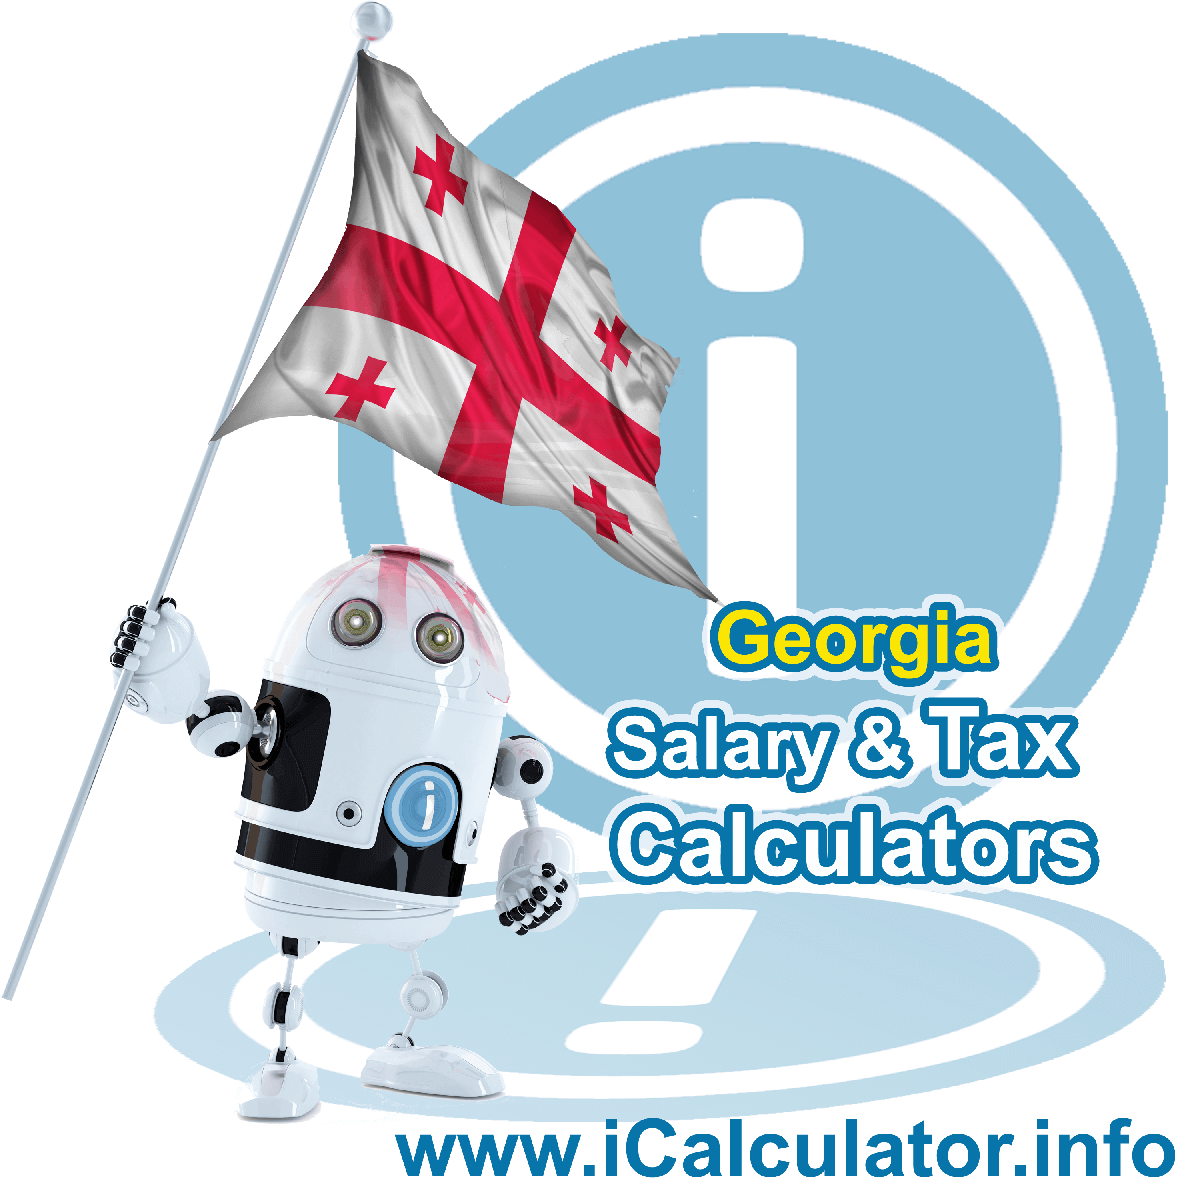 Georgia Tax Calculator. This image shows the Georgia flag and information relating to the tax formula for the Georgia Salary Calculator